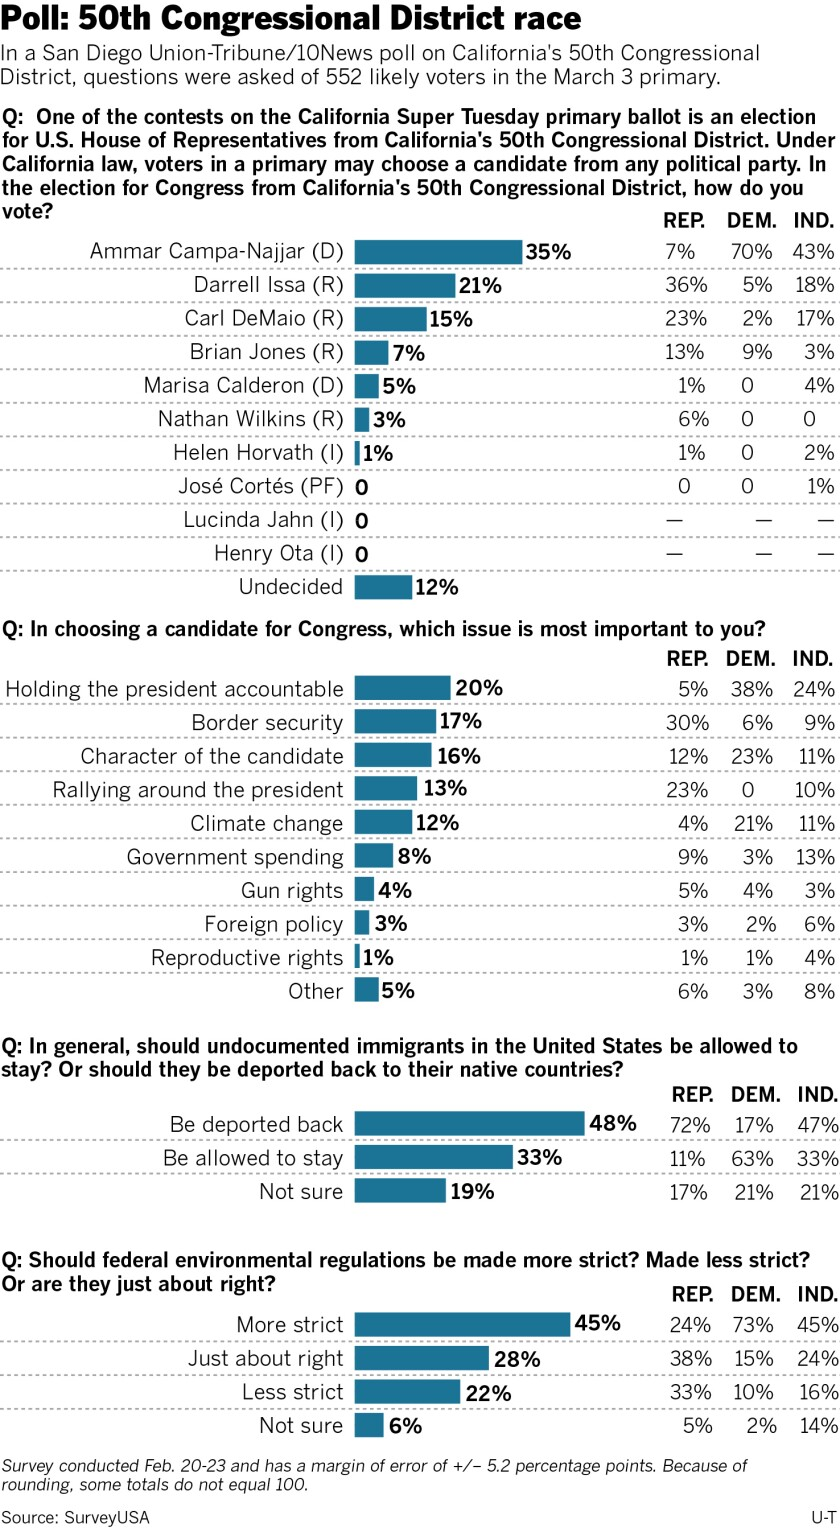 498476-w1-sd-me-g-50th-poll.jpg